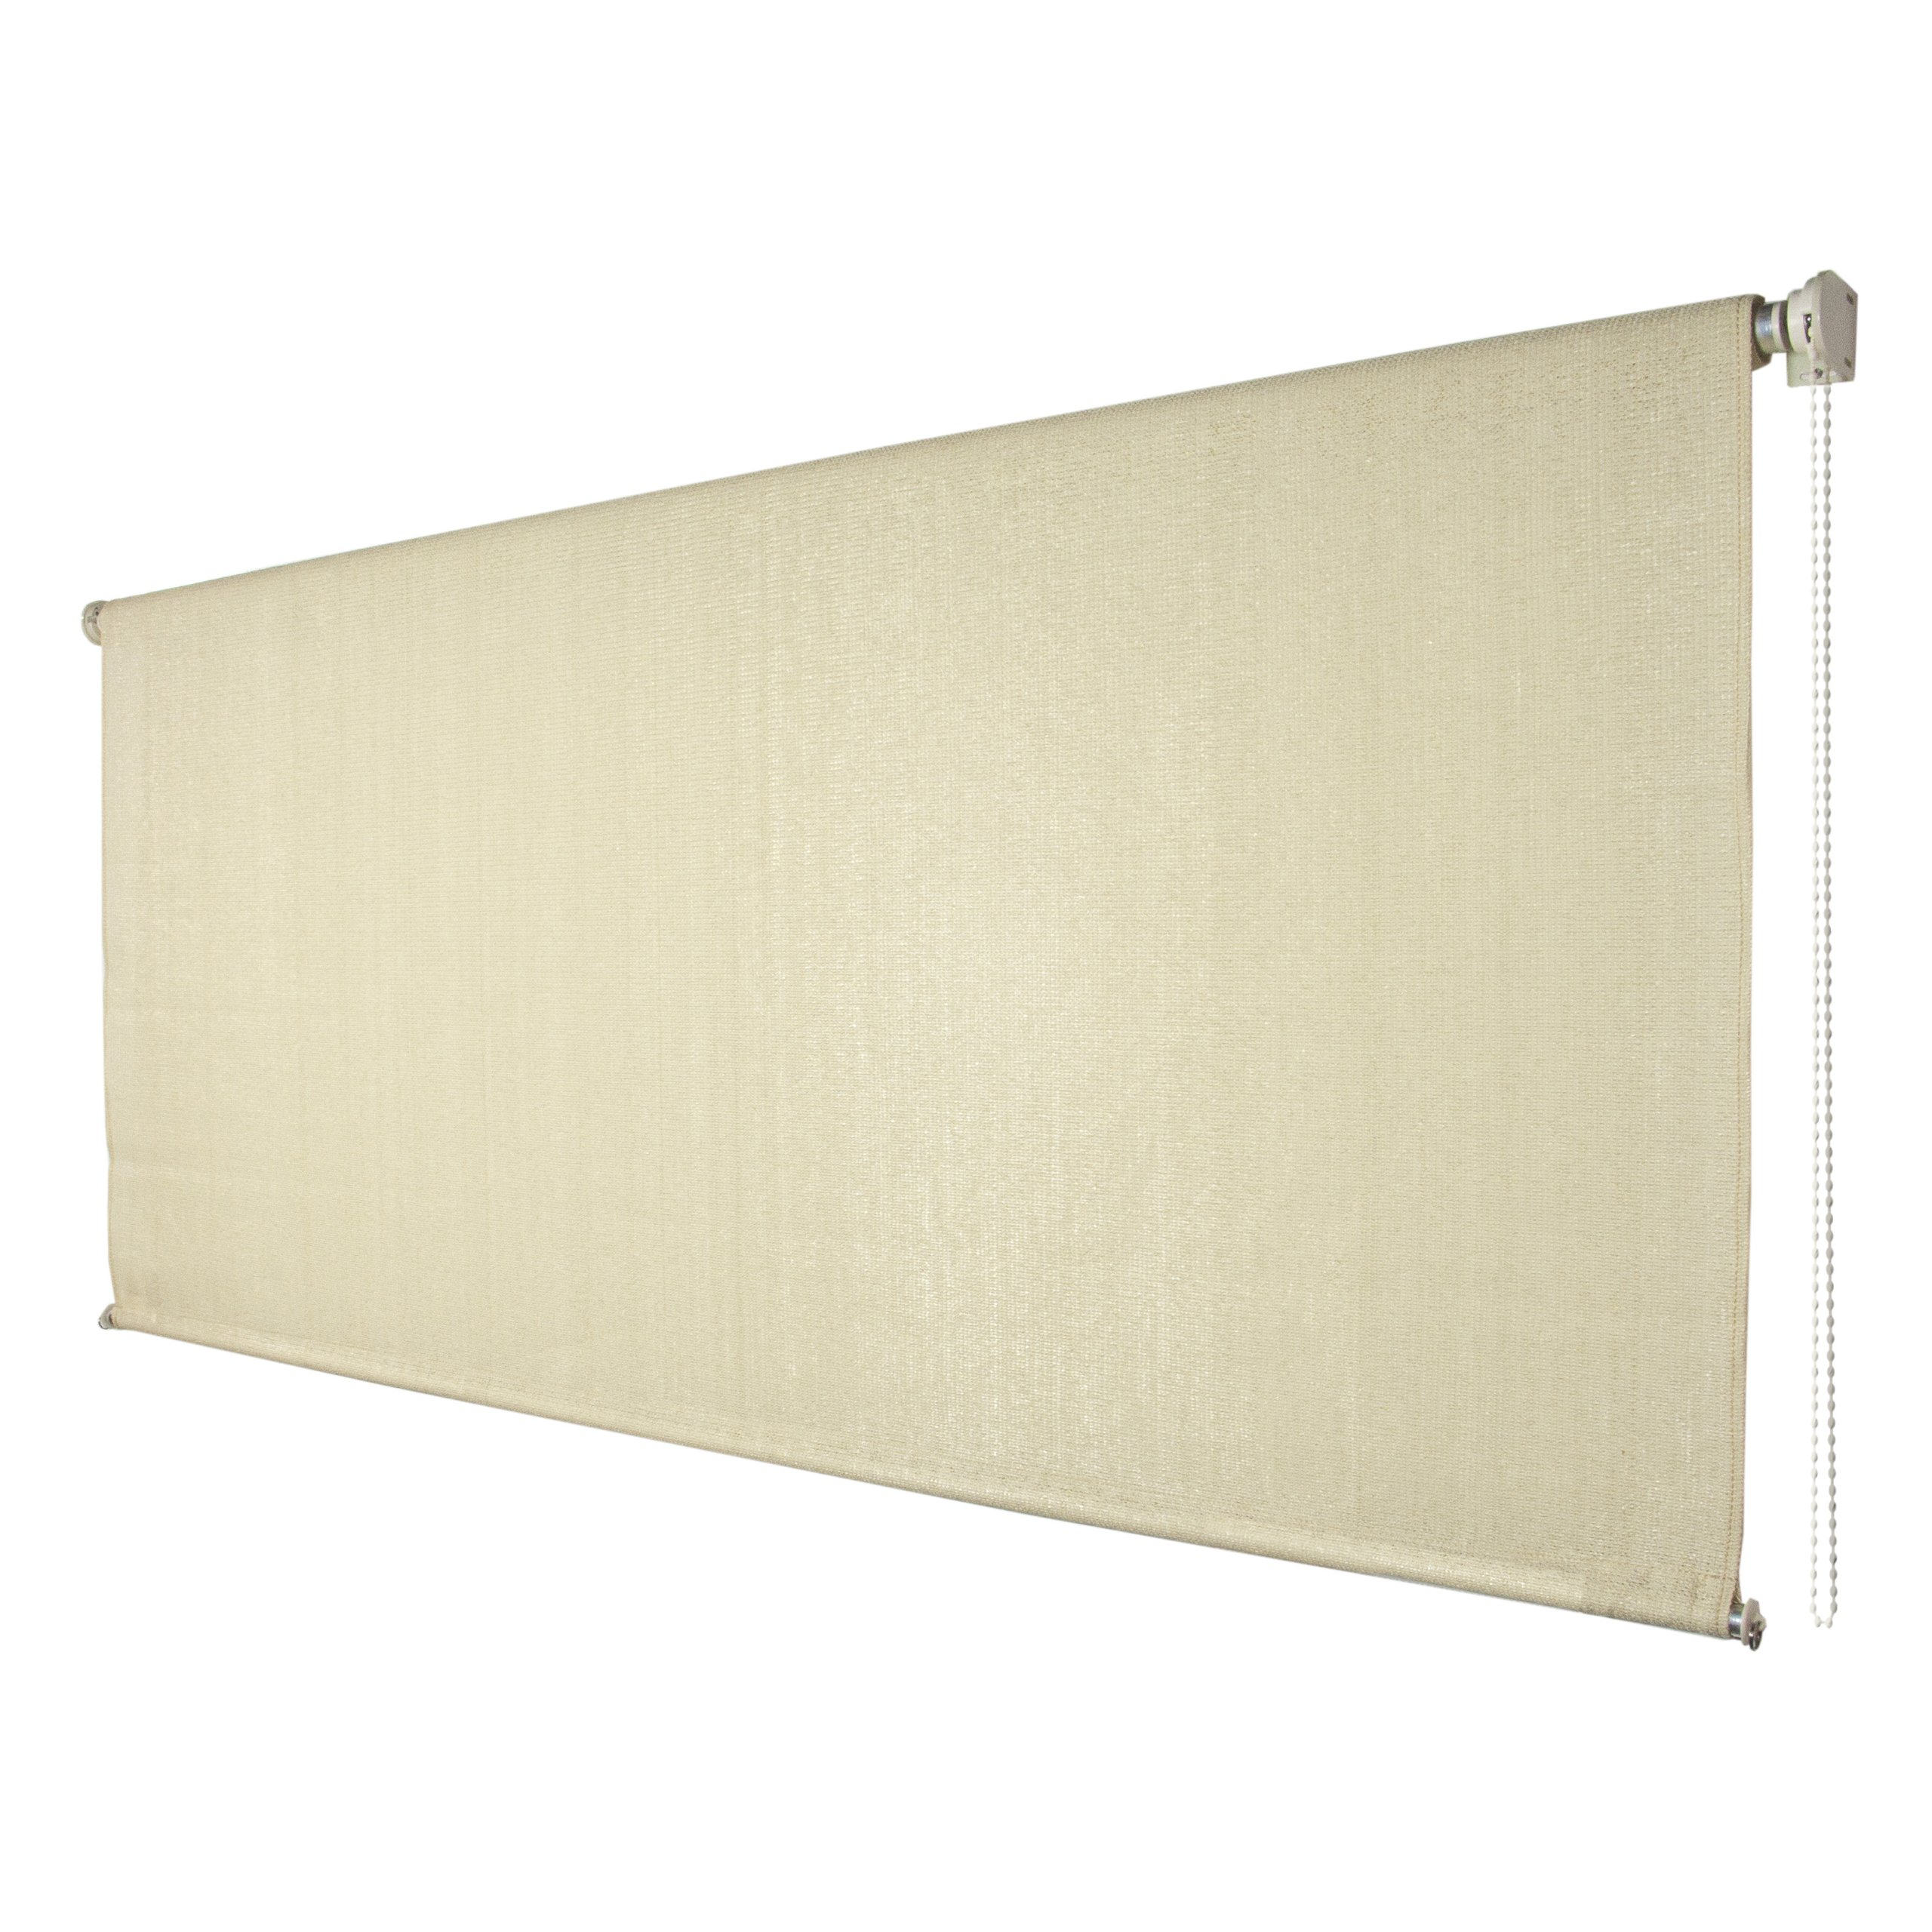 Coolaroo exterior roller shade 6 by 6 feet sesame ebay for Exterior roller shade